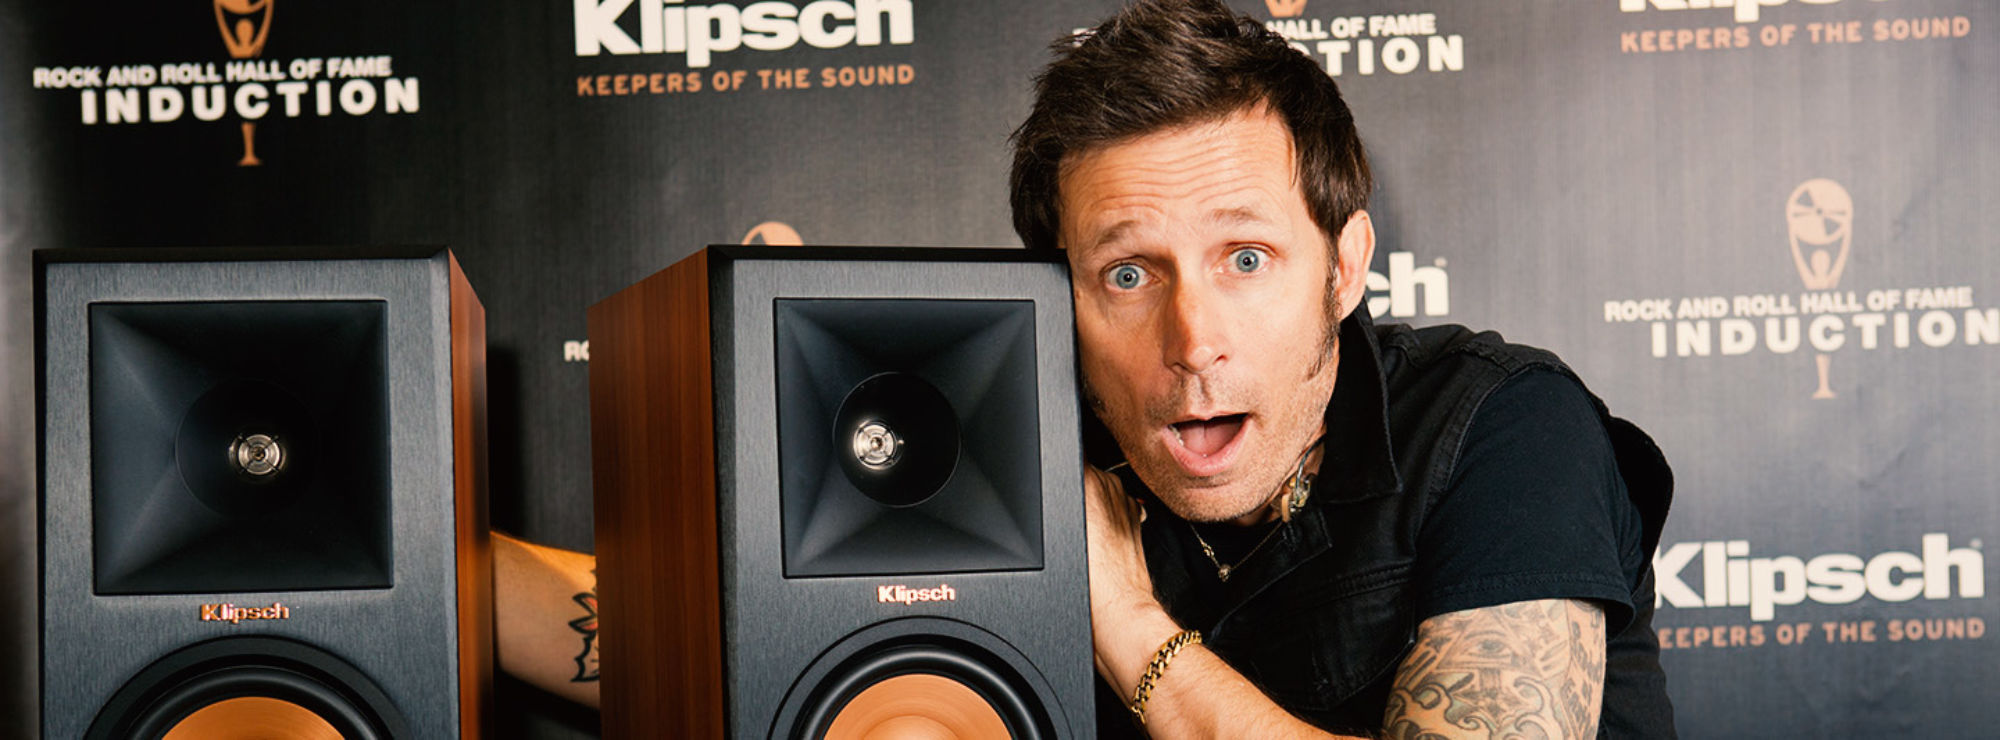 Mike Dirnt with Klipsch speakers